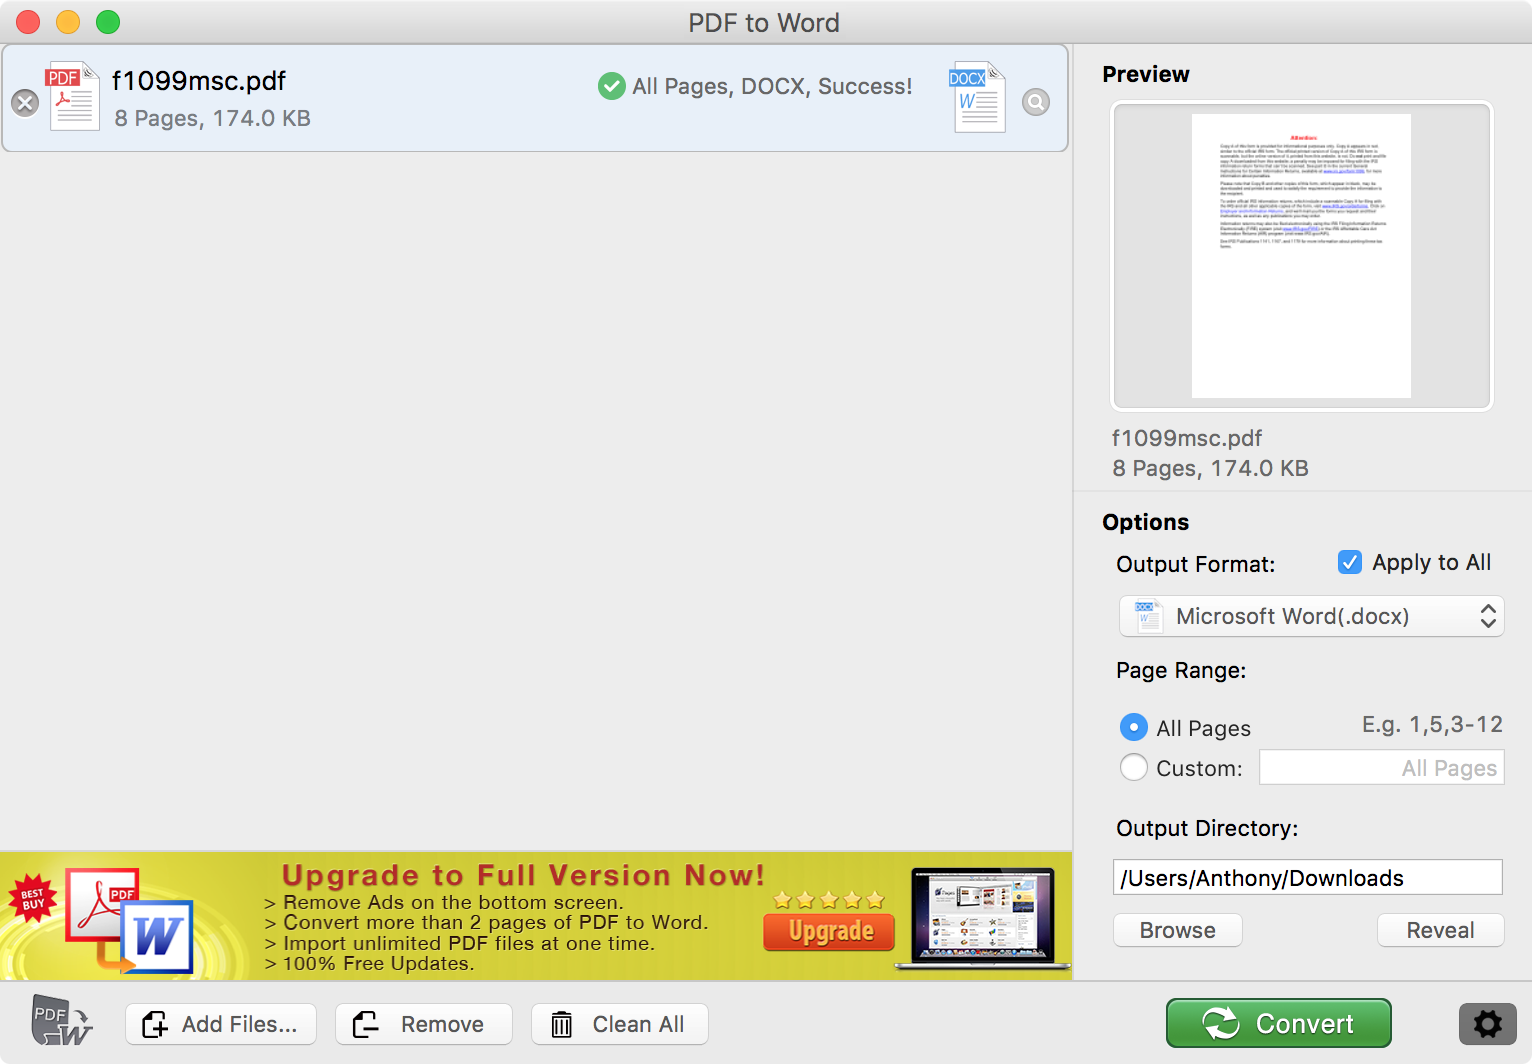 PDF file converted to .docx